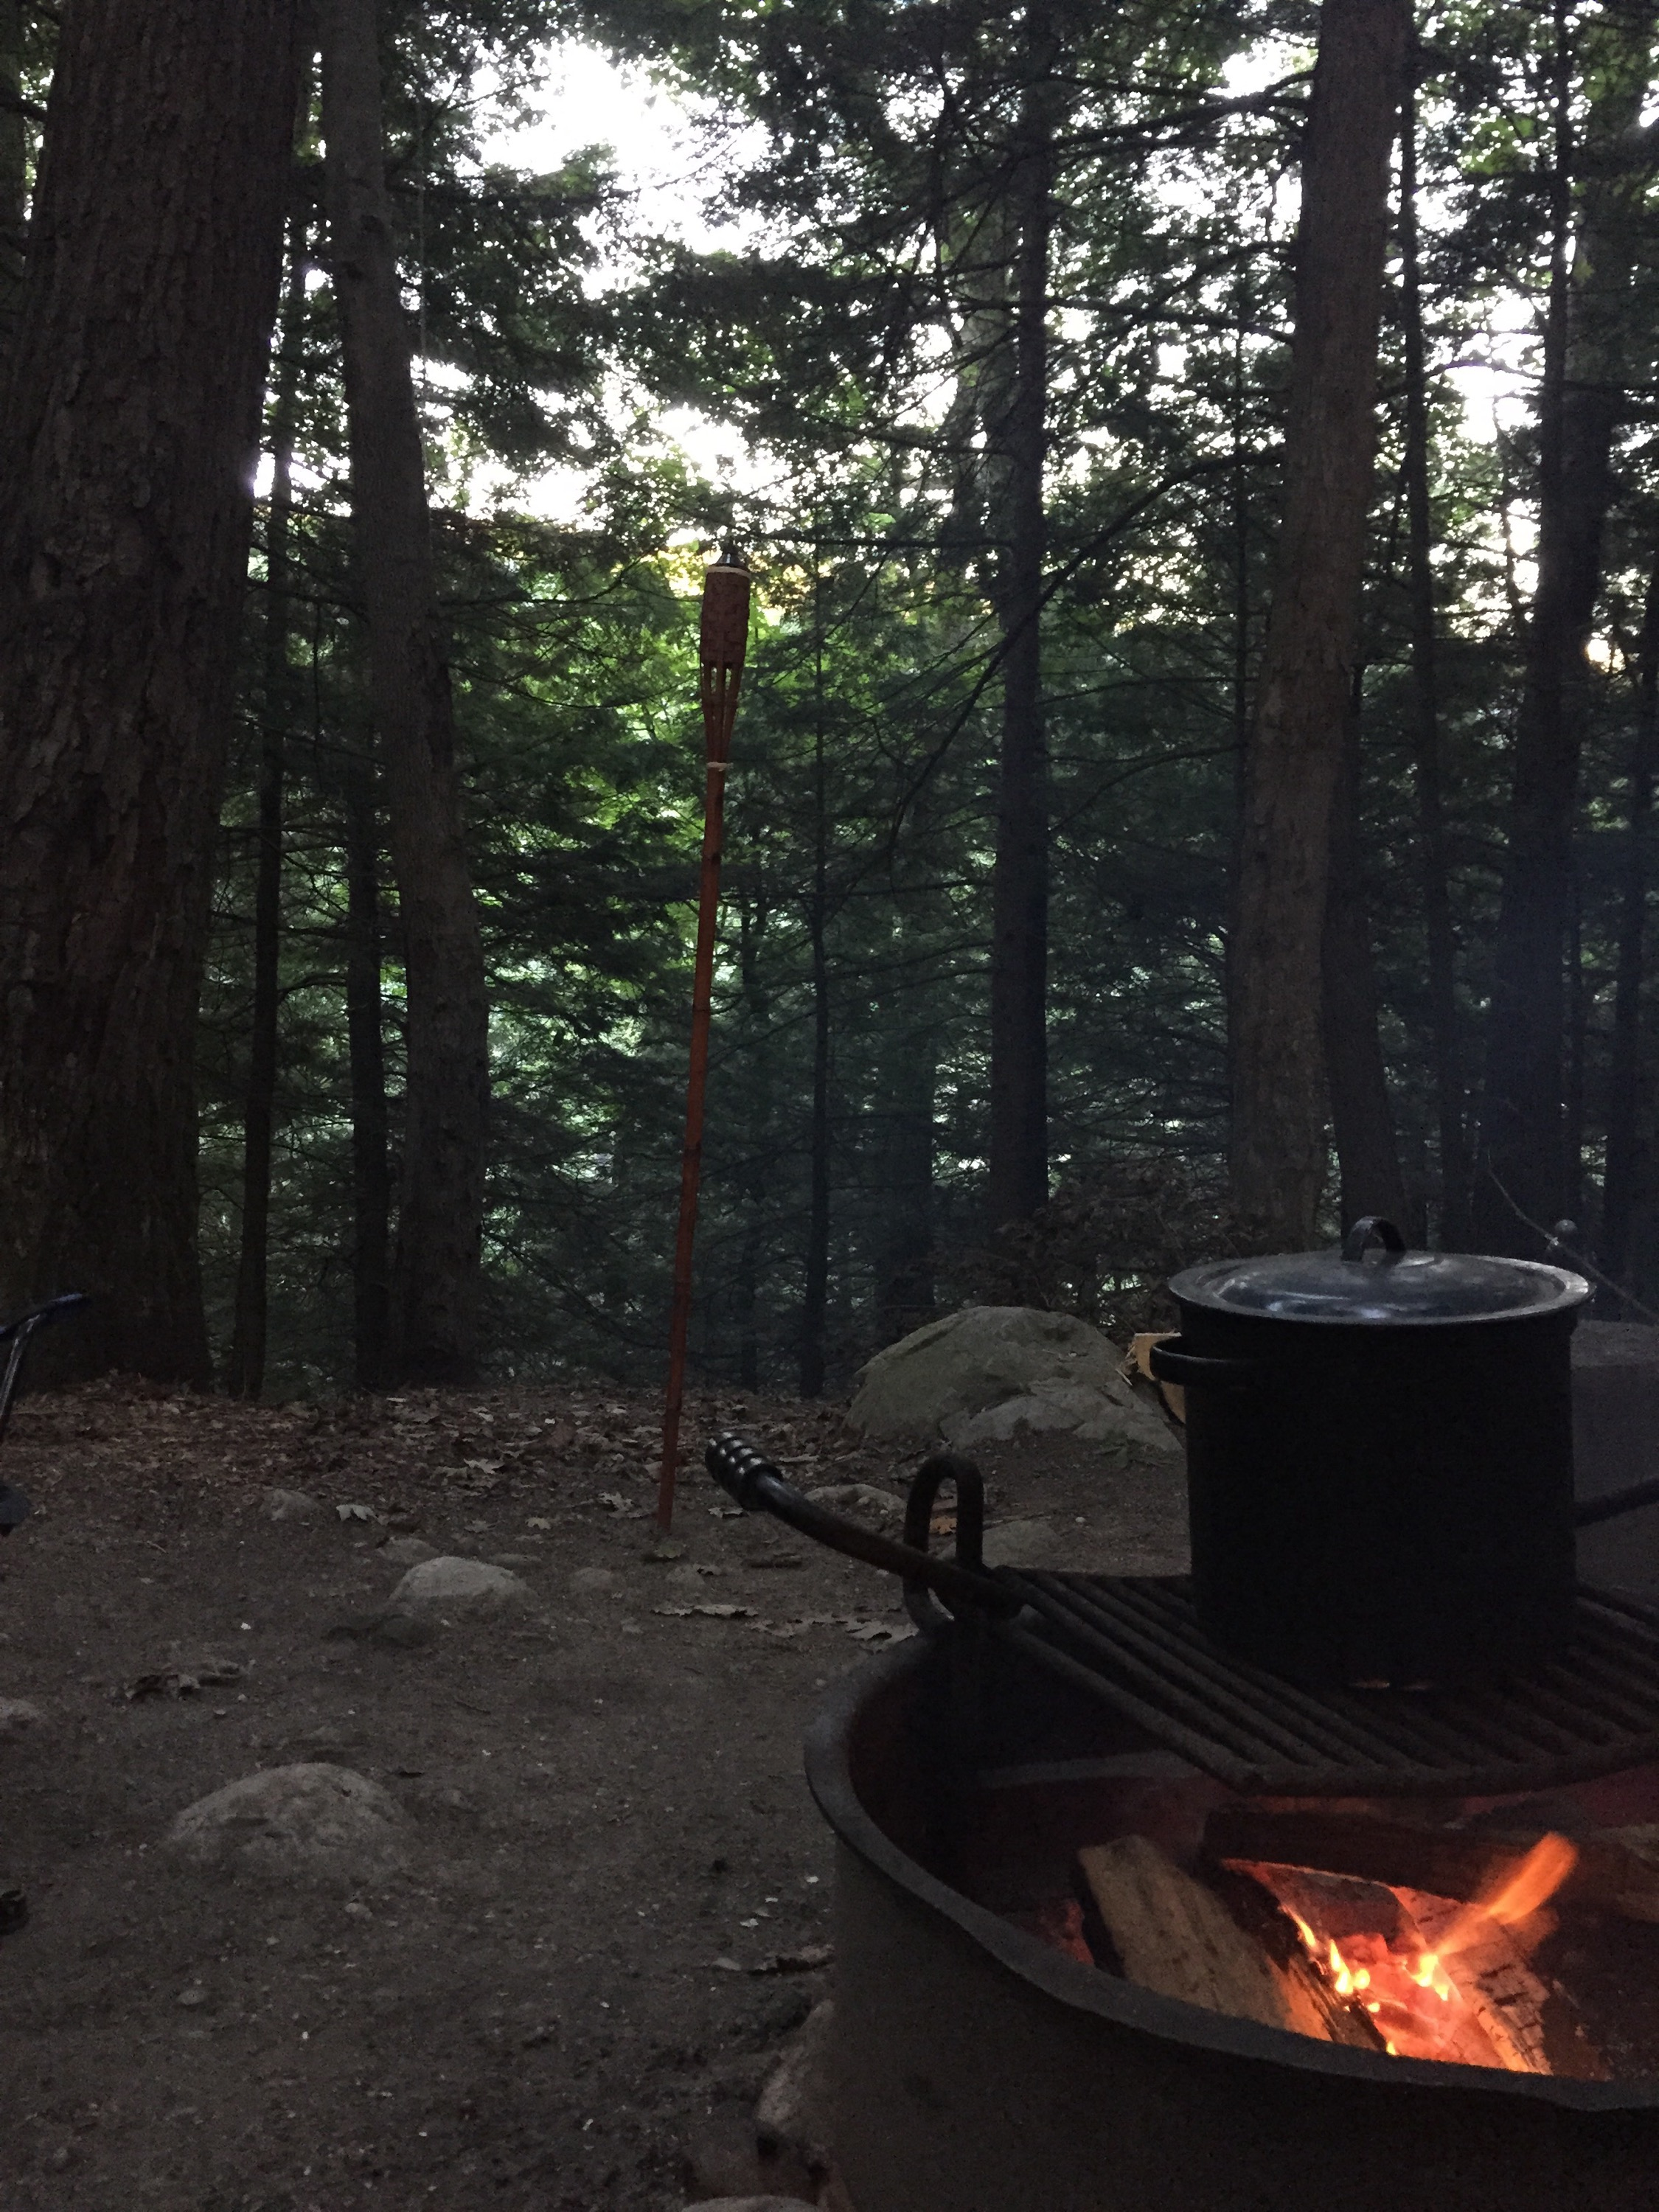 a pot cooks oveelooking a cliff